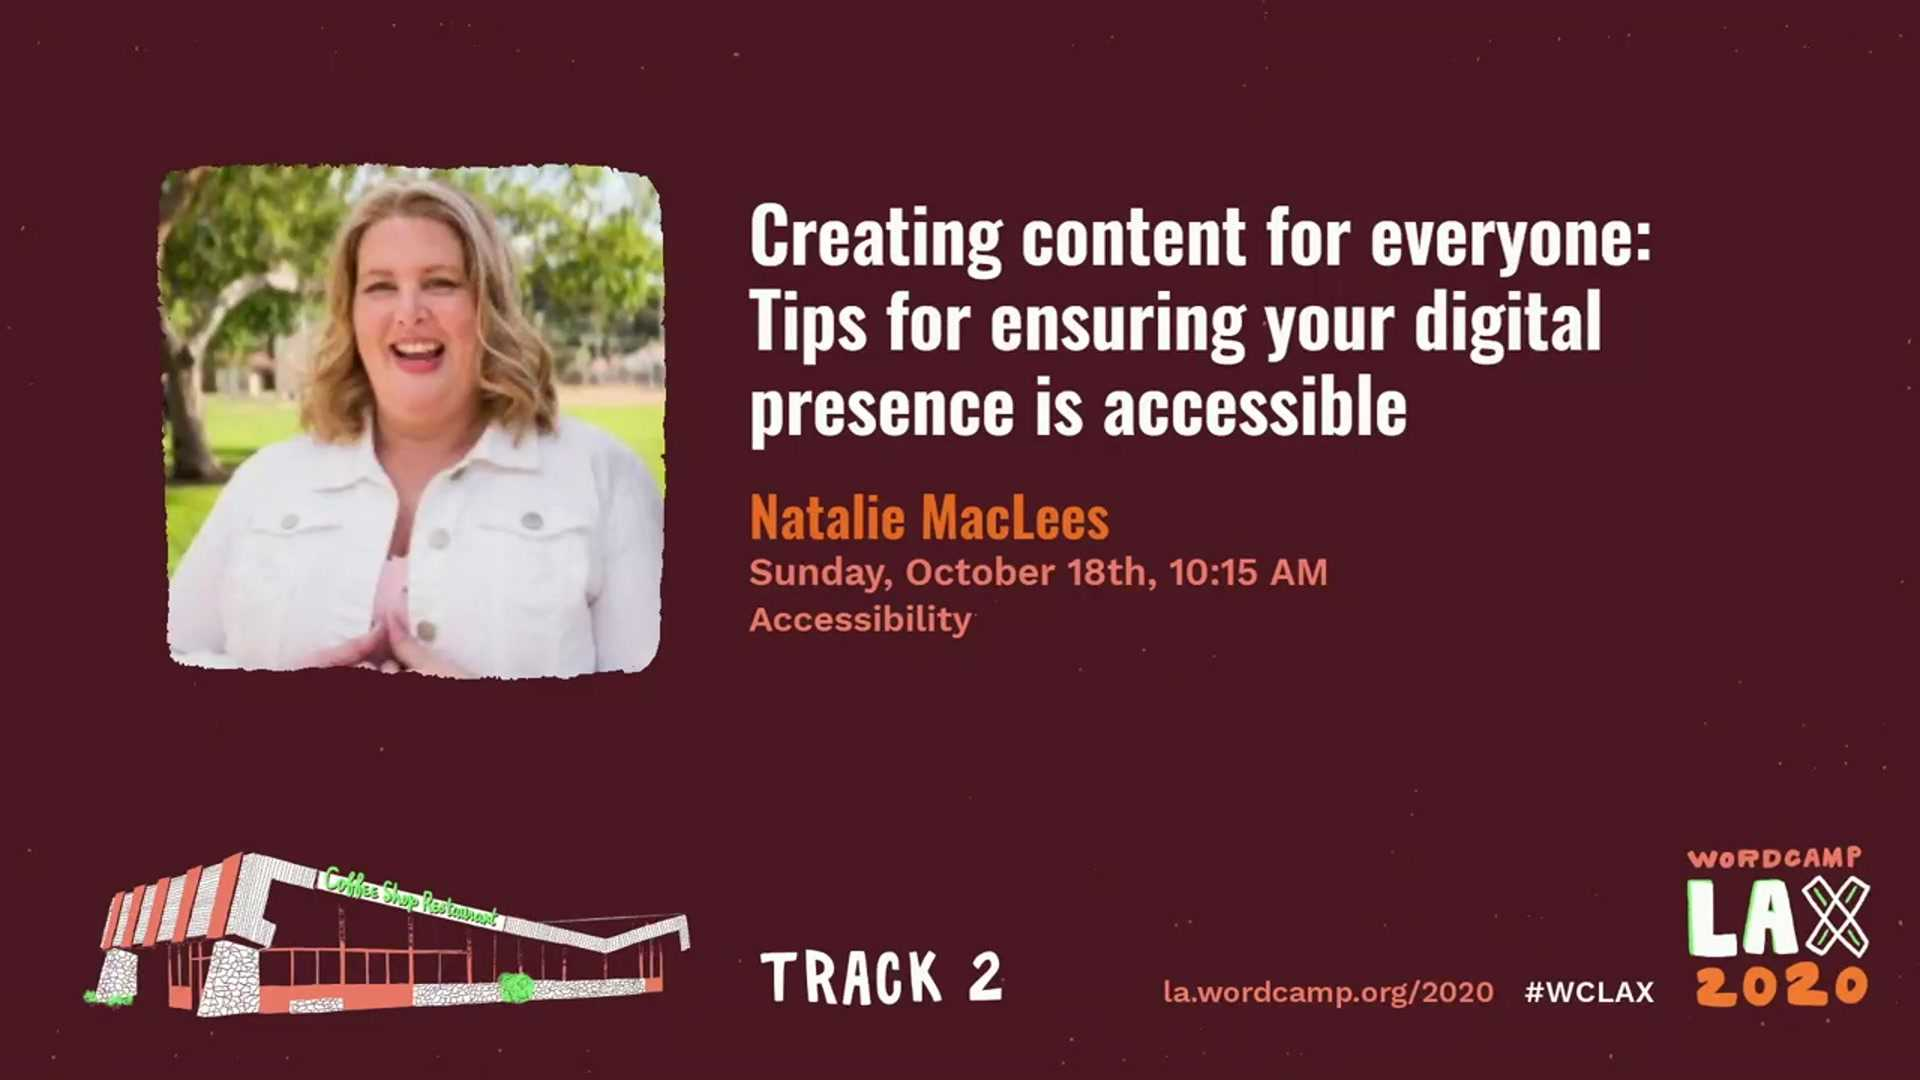 Natalie MacLees: Creating Content For Everyone: Tips For Ensuring Your Digital Presence is Accessible